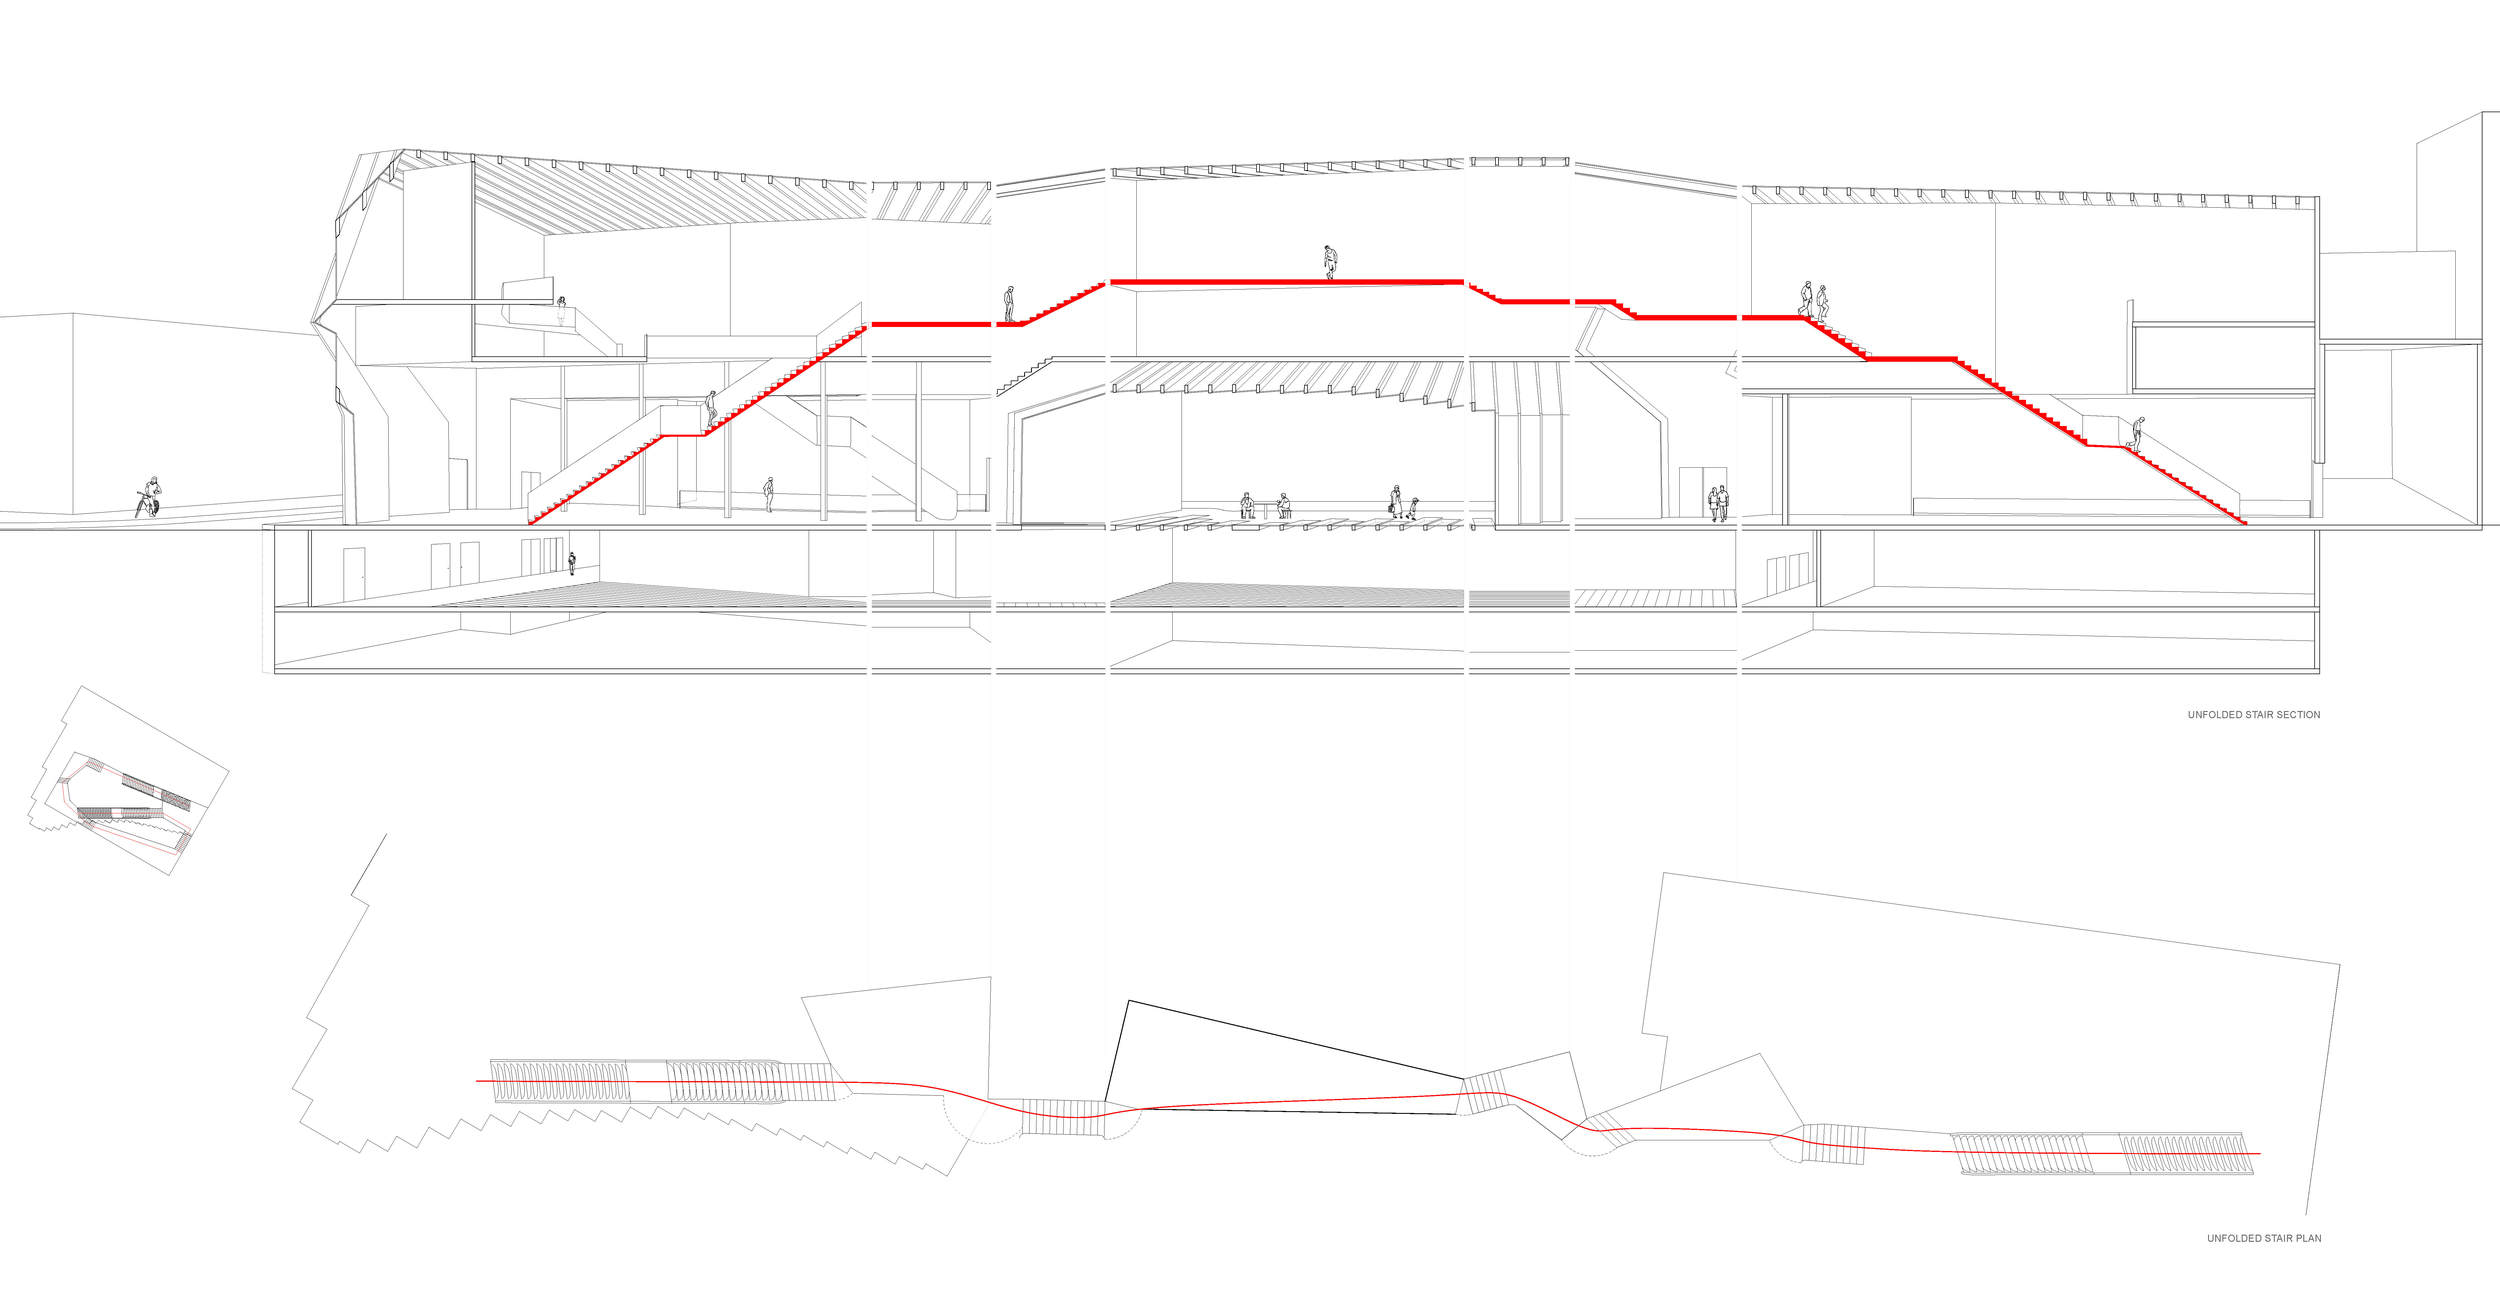 unfolded perspective section and plan